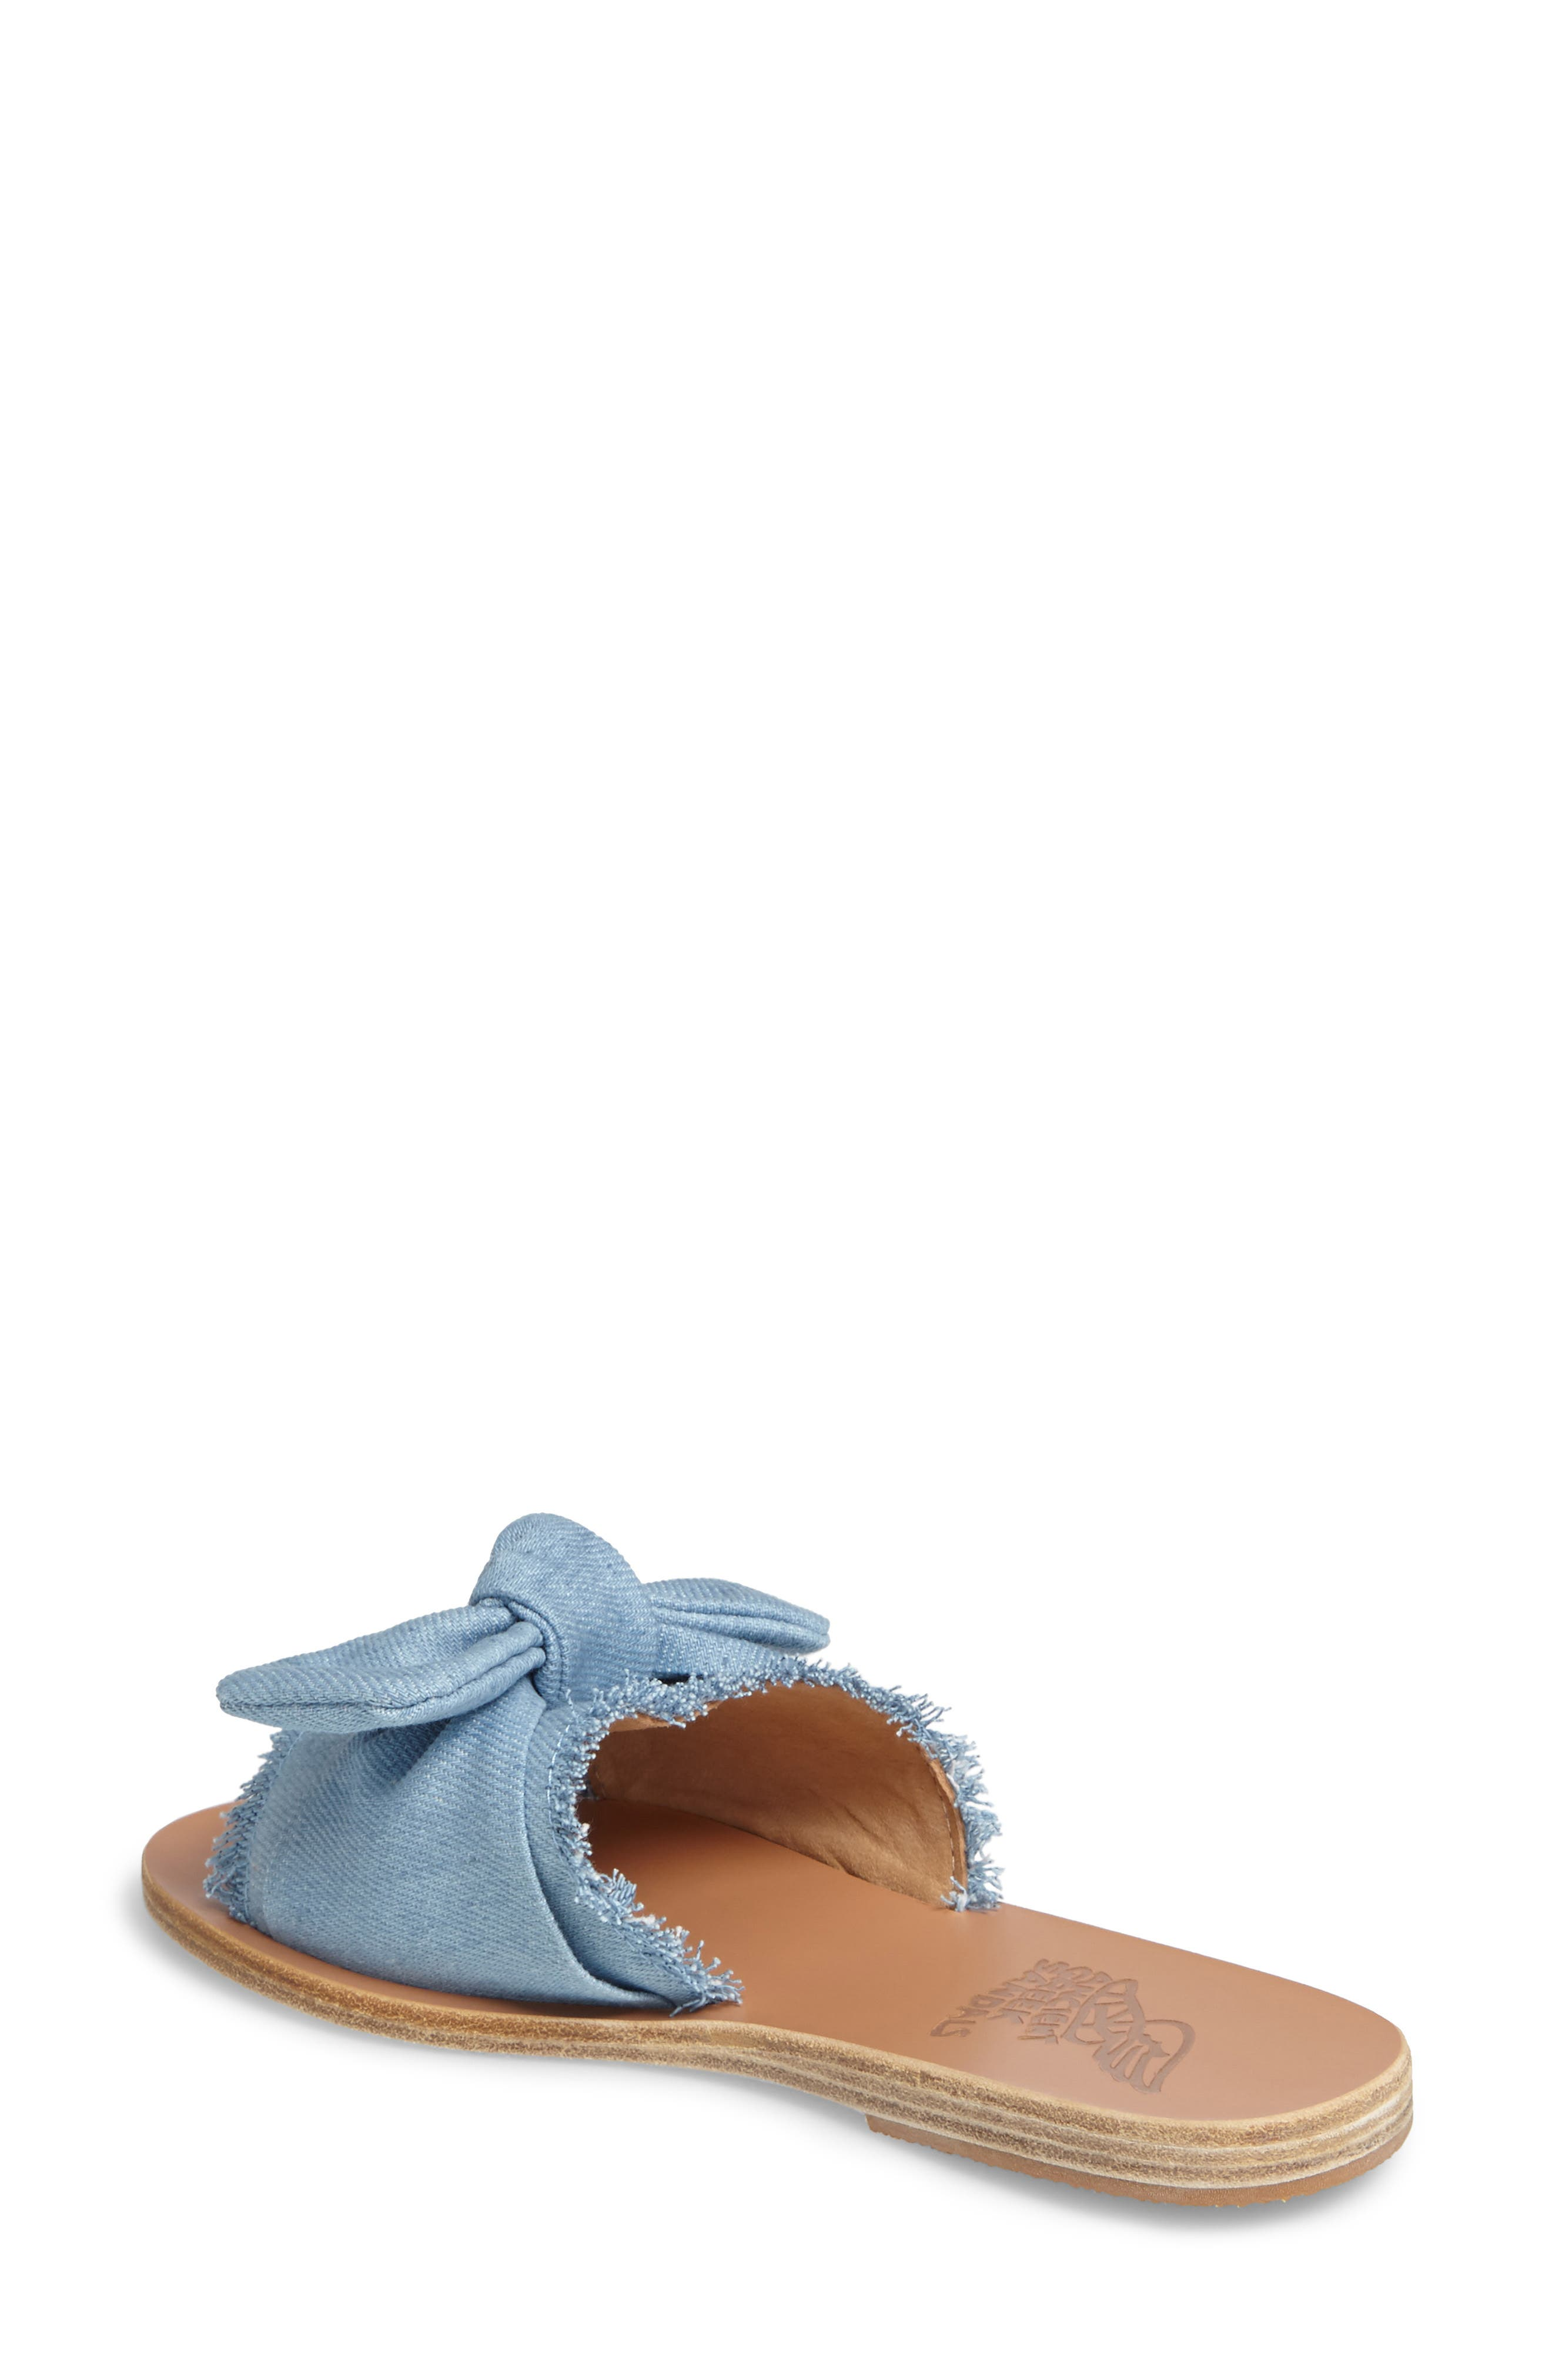 Taygete Bow Slide Sandal,                             Alternate thumbnail 6, color,